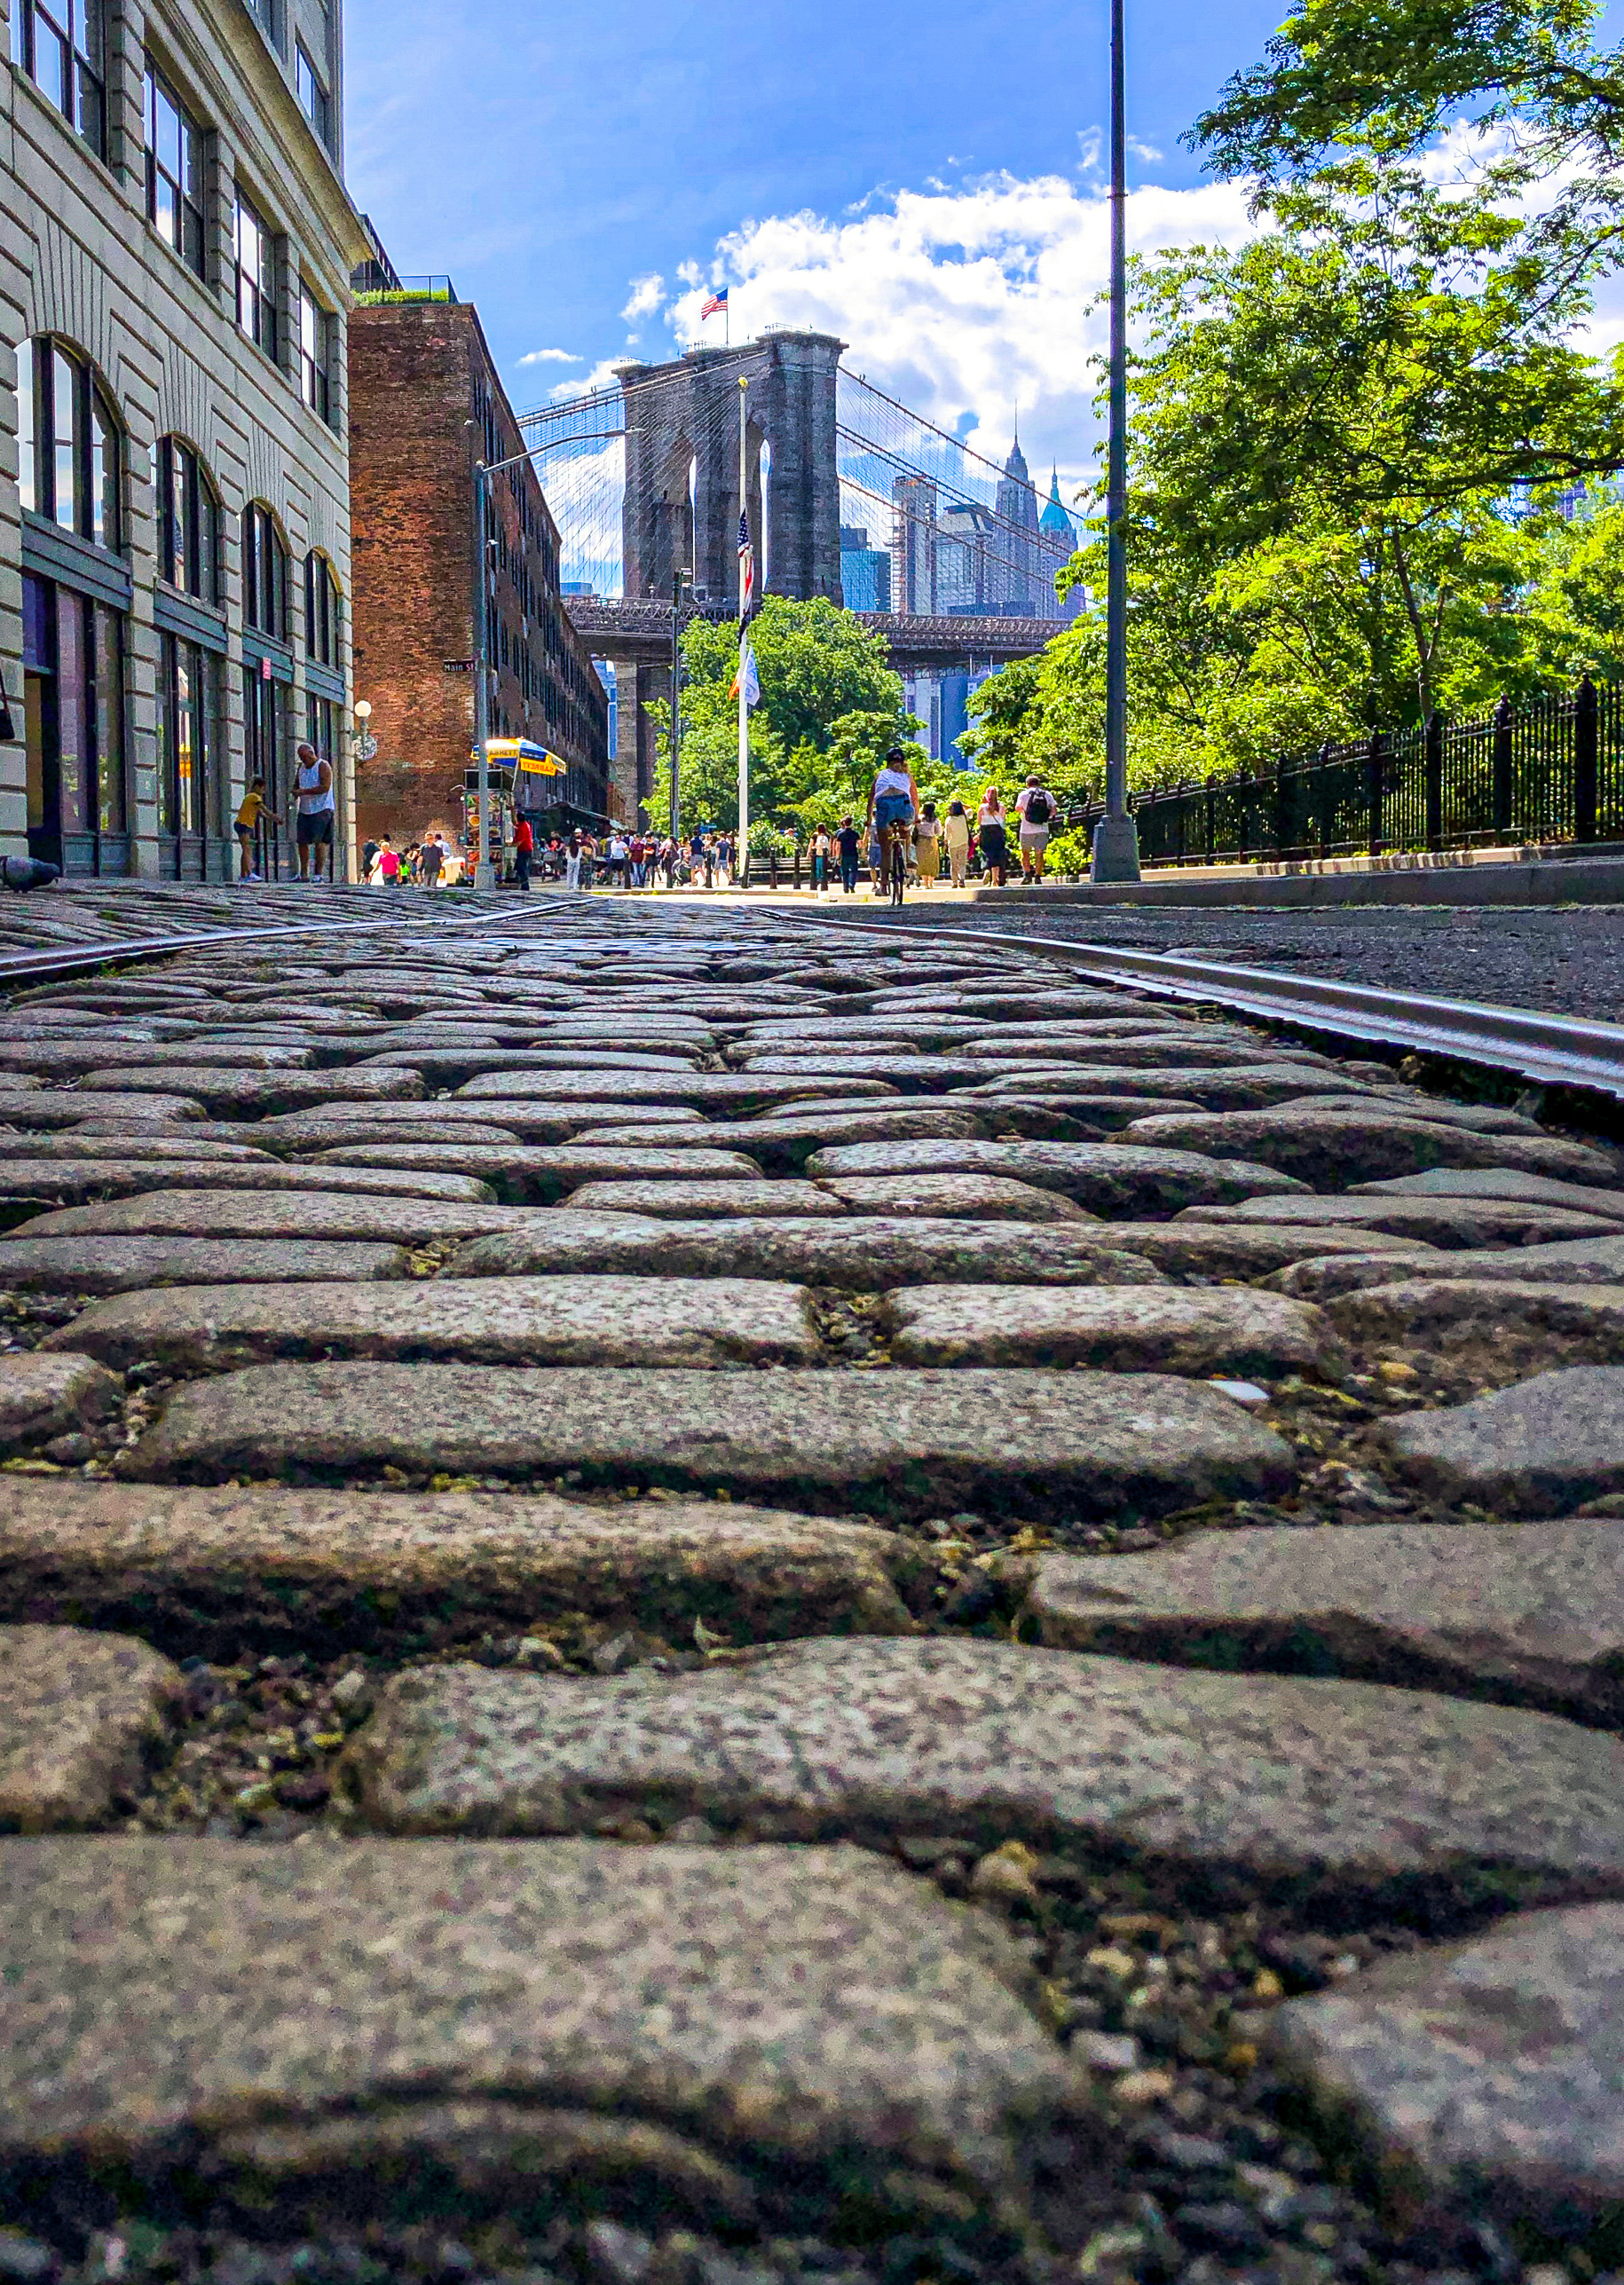 I returned to Plymouth Street in Brooklyn, which aligns with the bridge's tower, to retake this perspective that brings viewers into the crannies of its cobblestones. I wanted to capture the sky more clearly and got an assist from clouds.